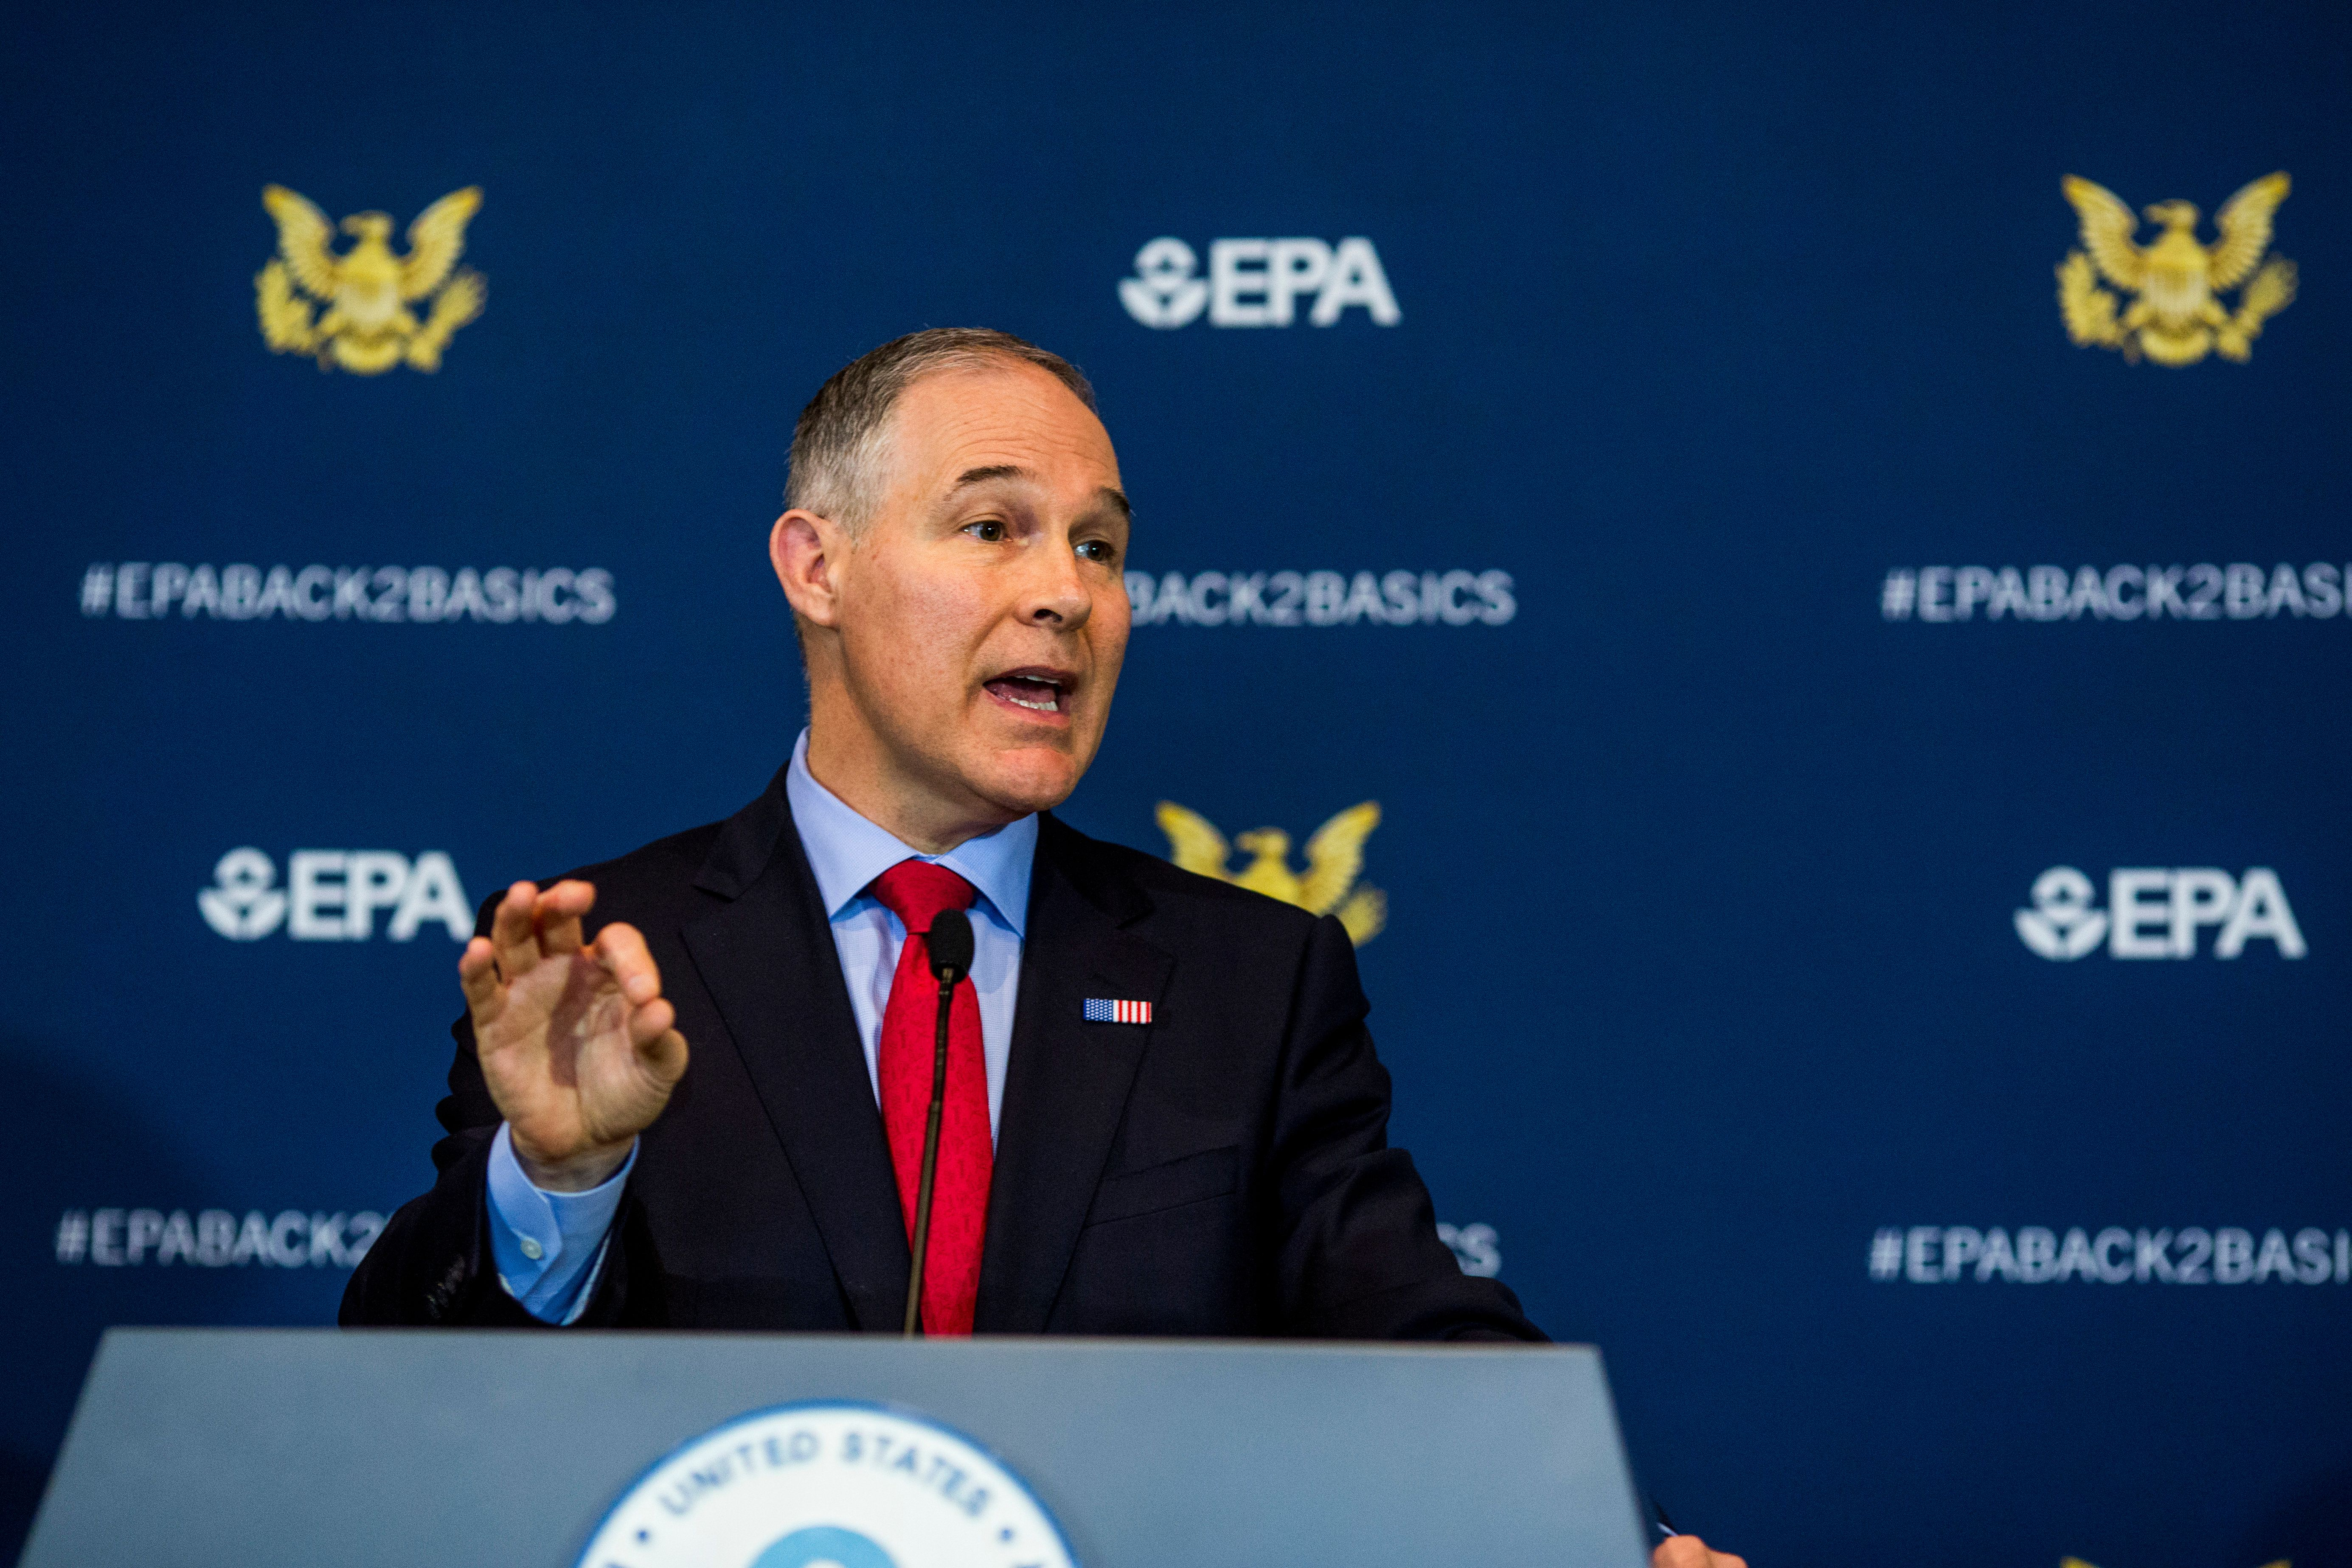 WASHINGTON, D.C. - APRIL 2: Environmental Protection Agency Administrator Scott Pruitt speaks to the press at a news conference at the Environmental Protection Agency on April 2, 2018 in Washington, D.C. The news conference was to announce the elimination of the Obama administration fuel standards for the automotive industry.  (Photo by Jason Andrew/Getty Images)